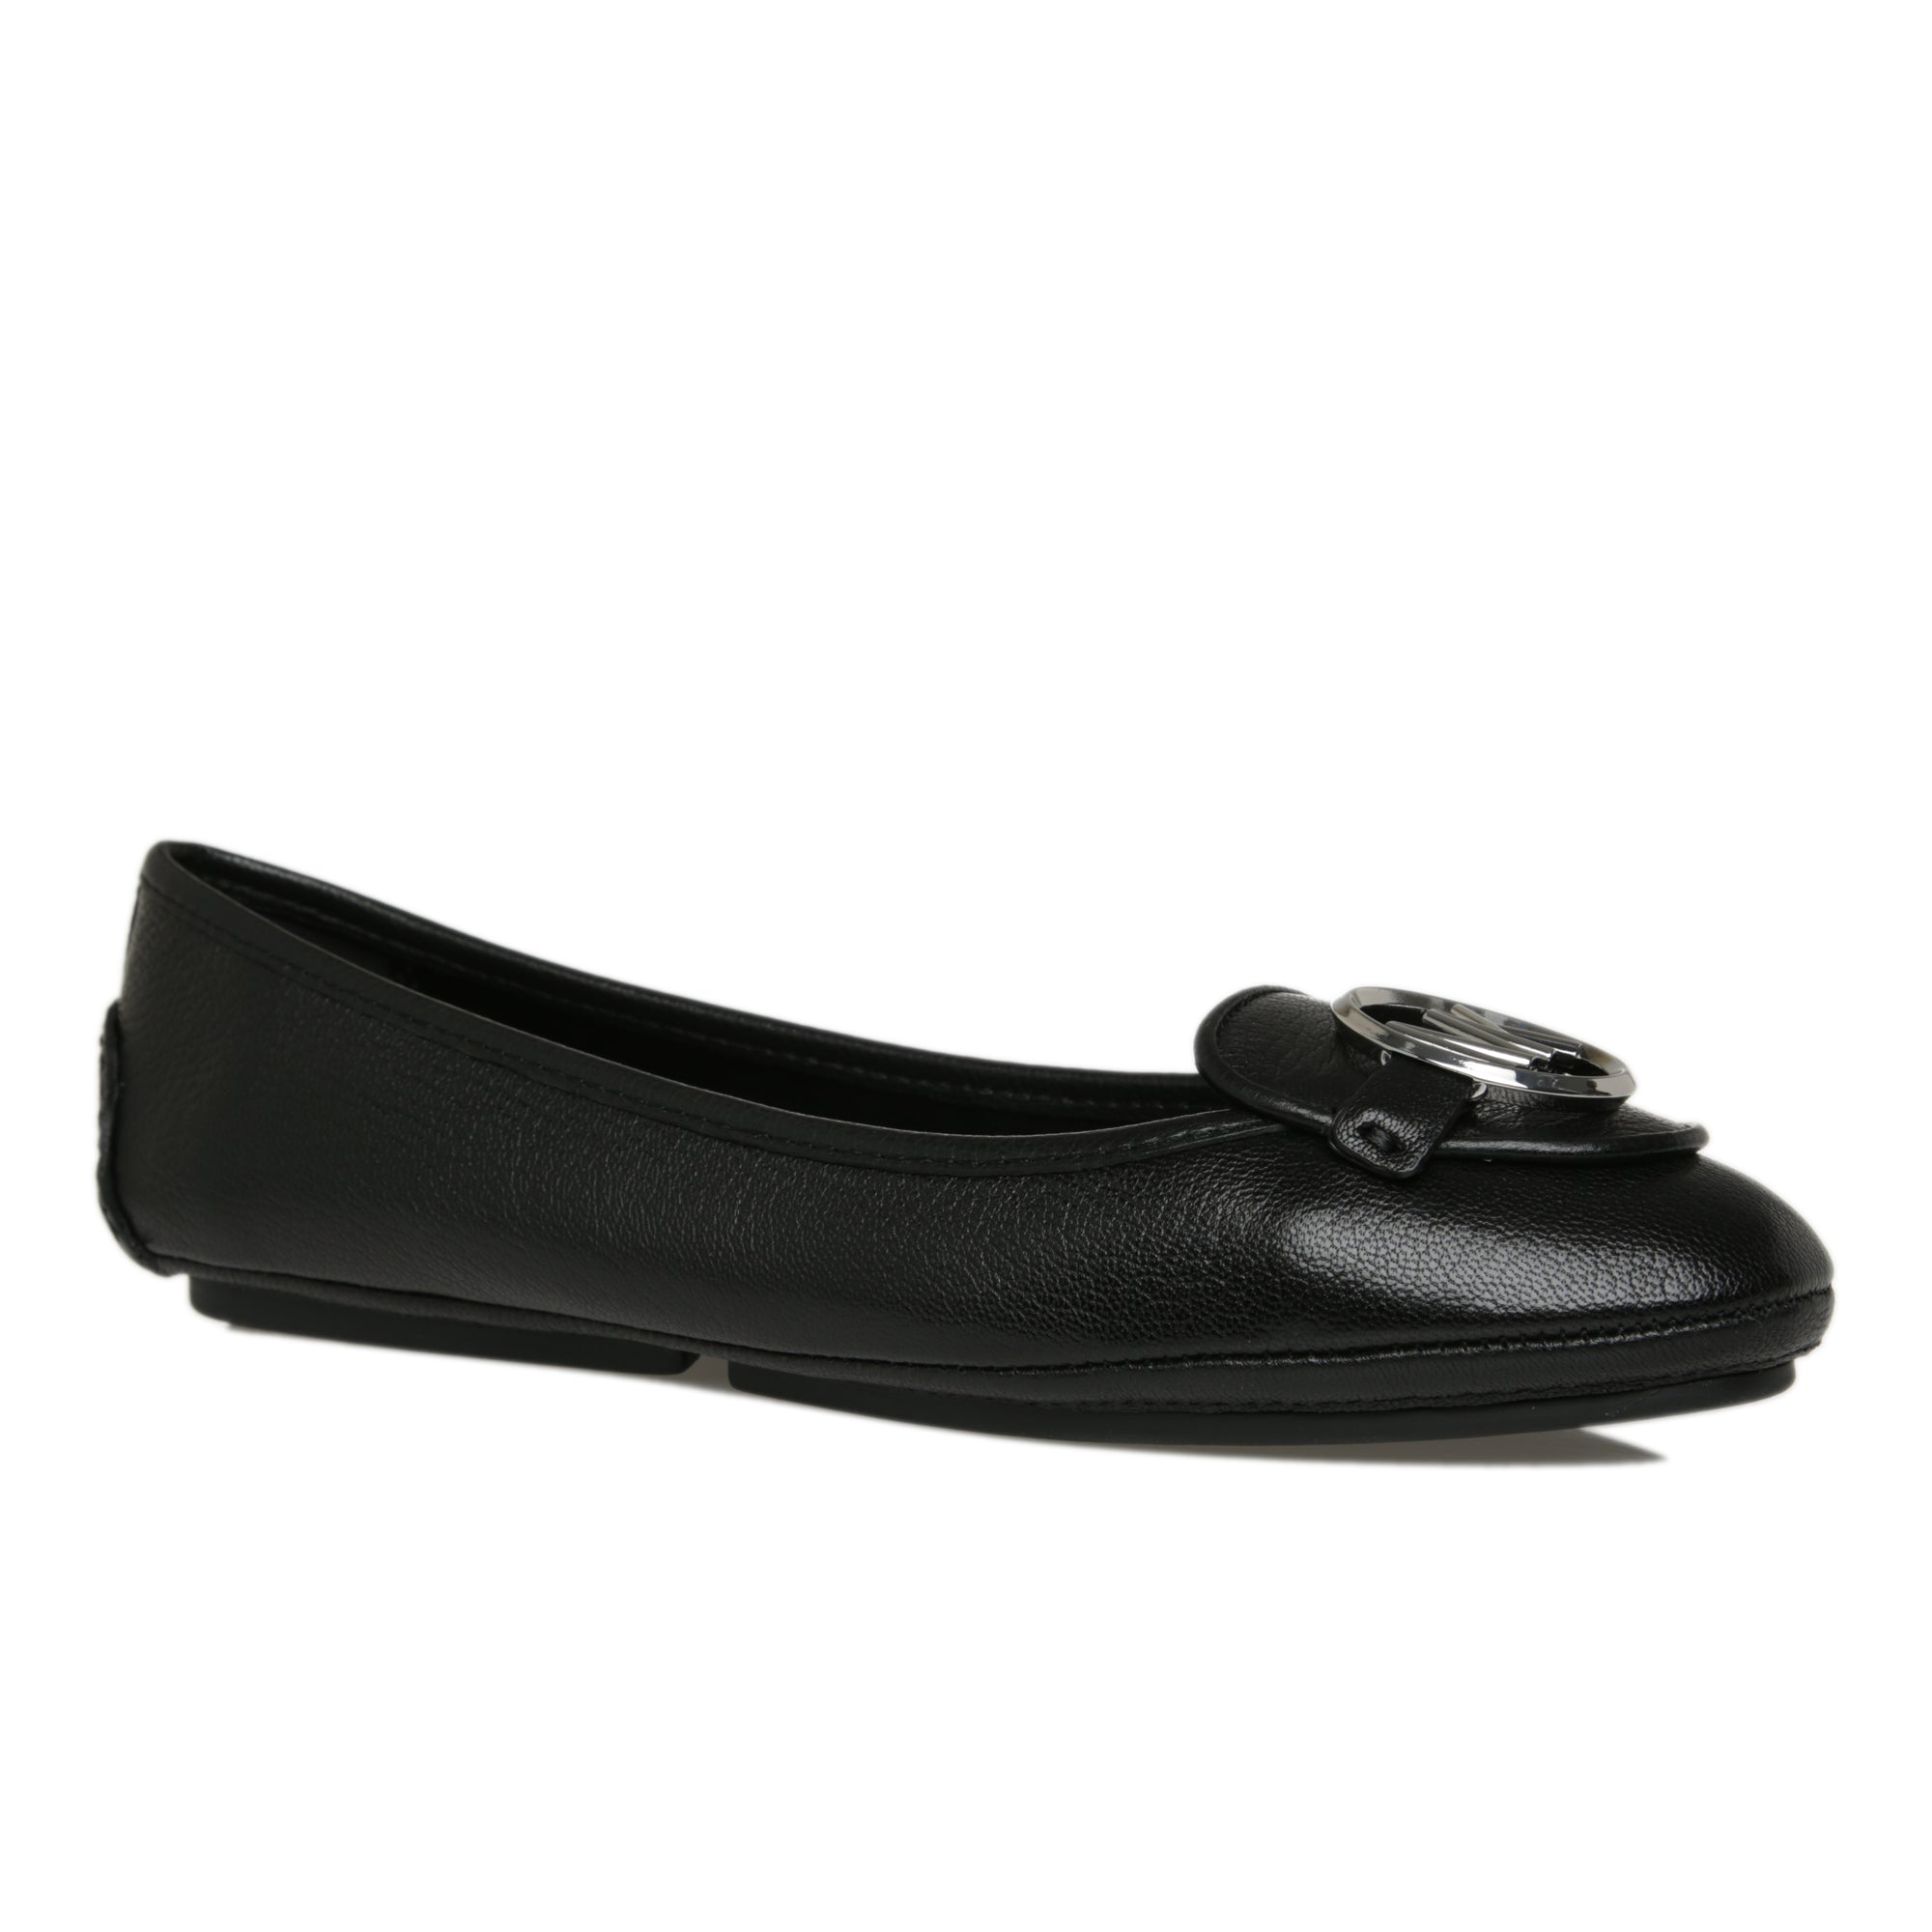 Lillie Leather Moccasin Black